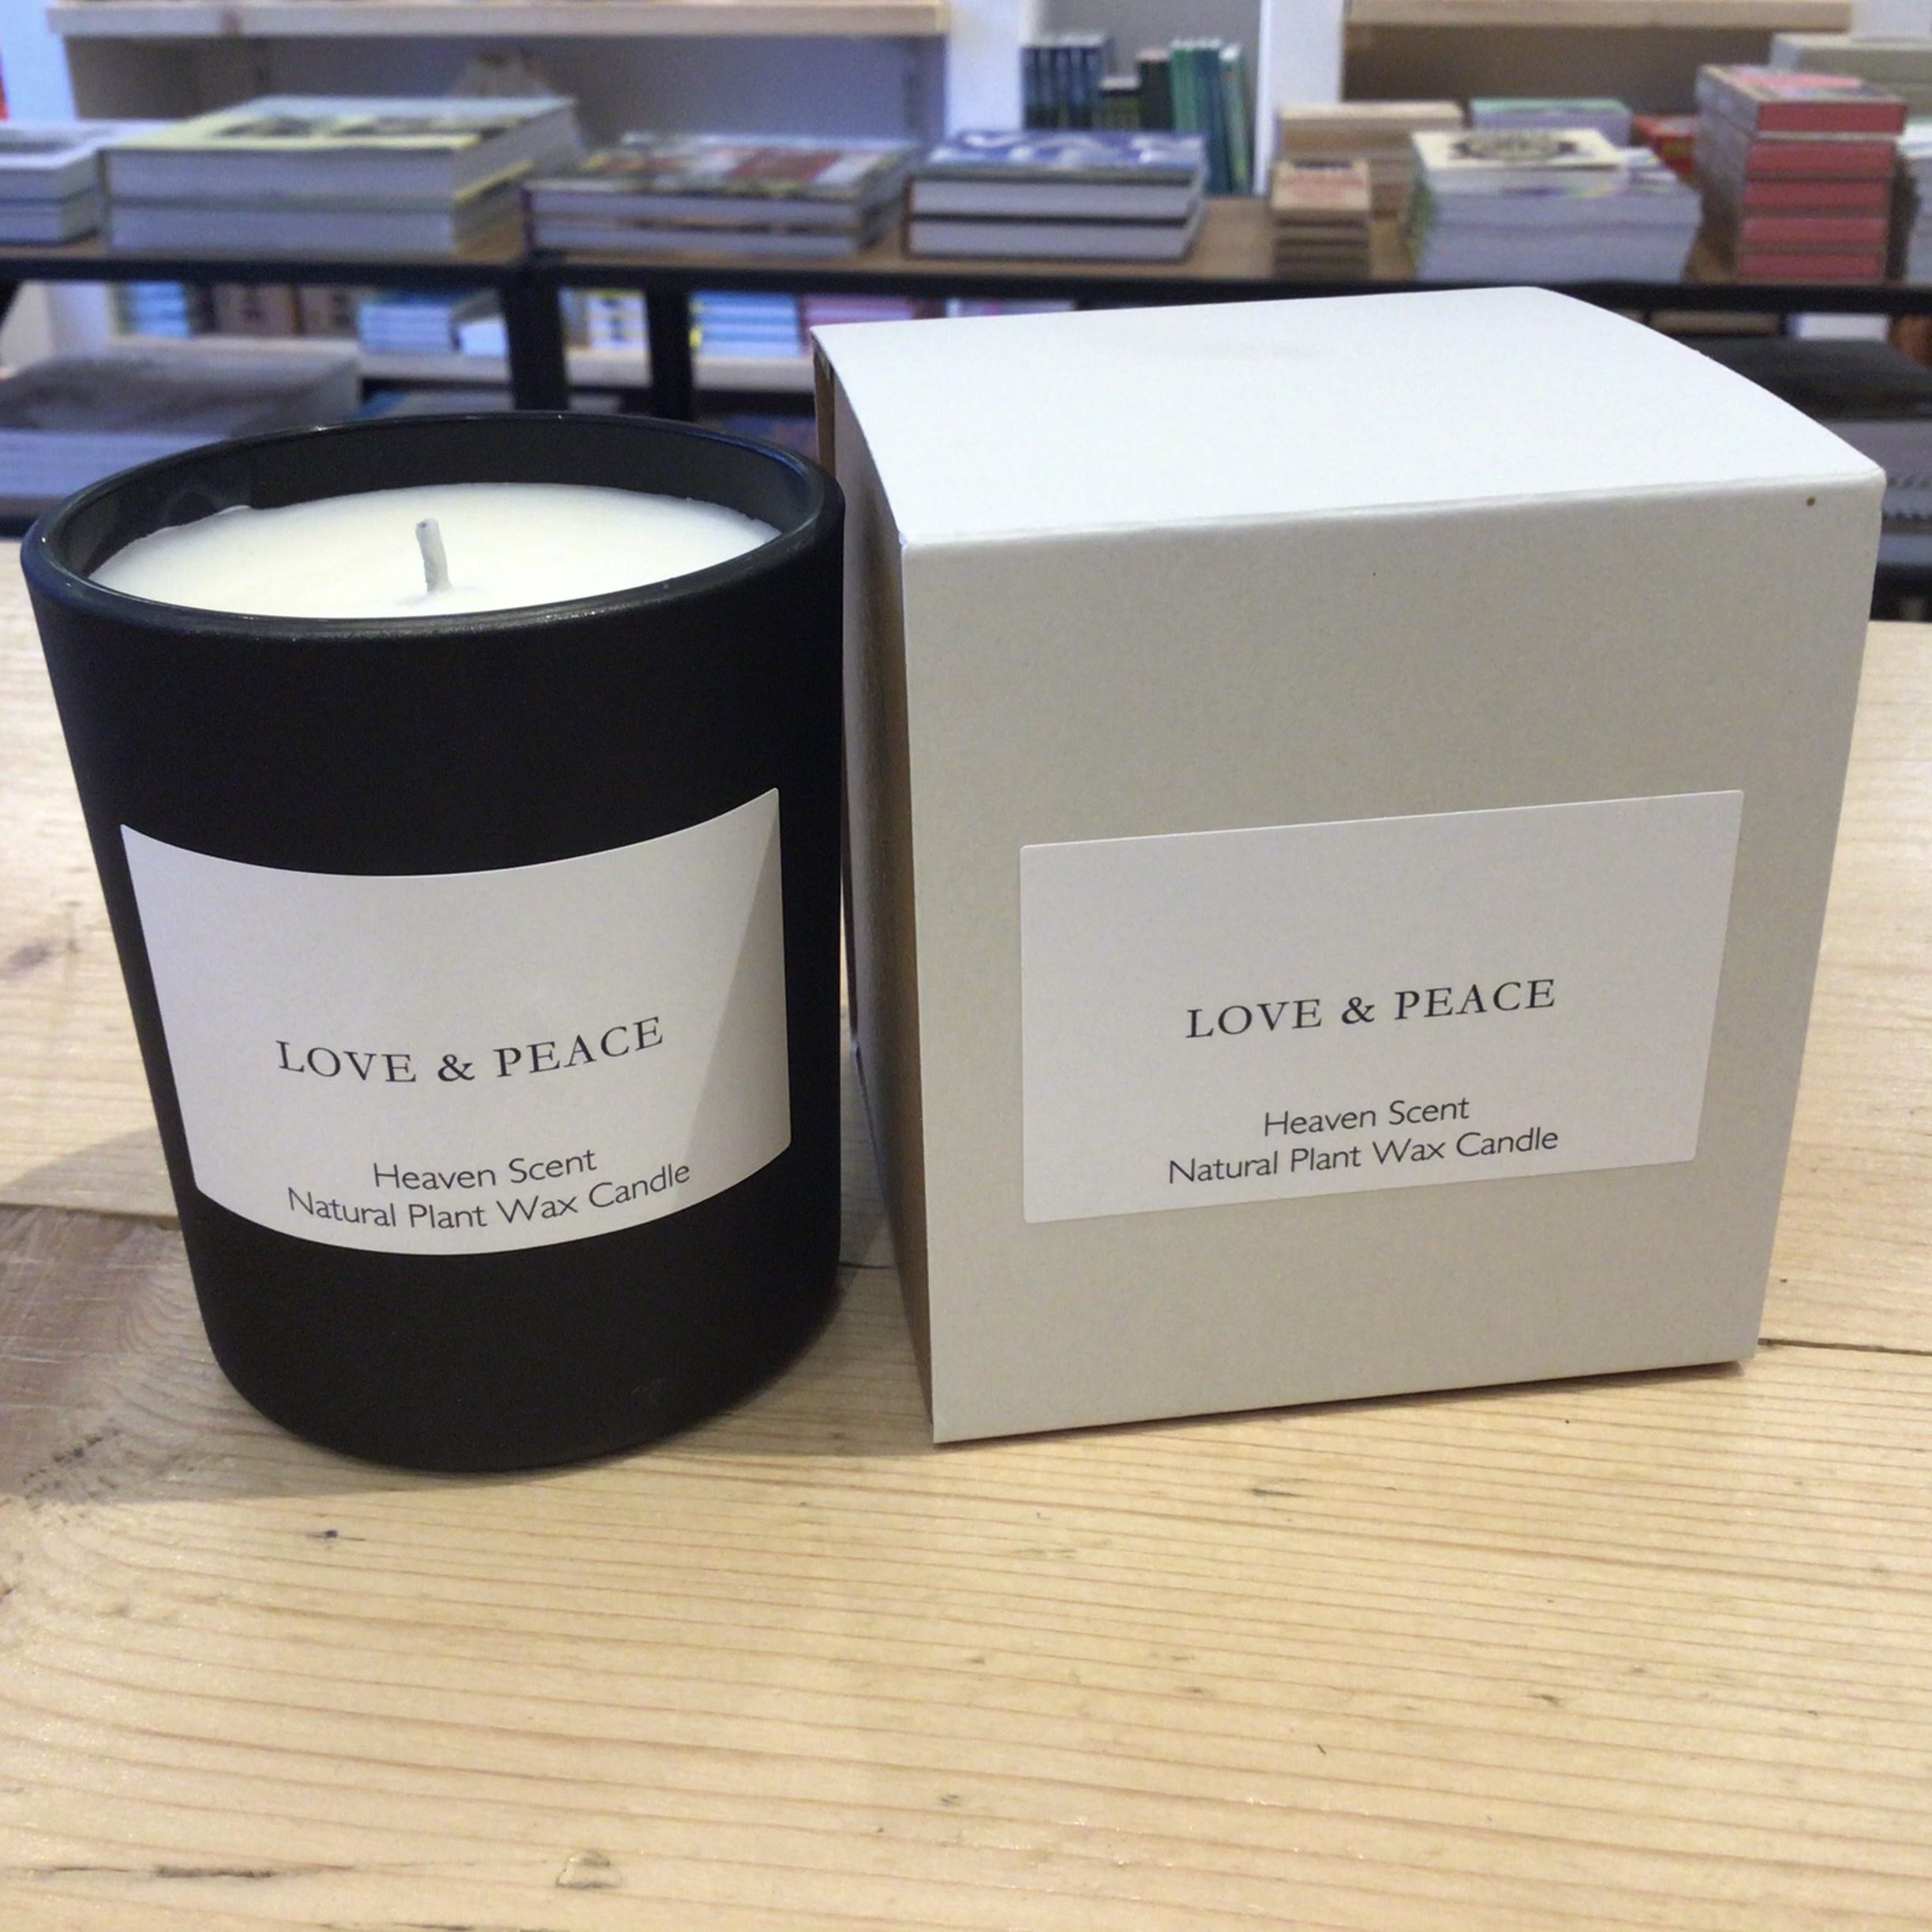 Heaven Scent - Love & Peace - Natural Plant Wax Candle